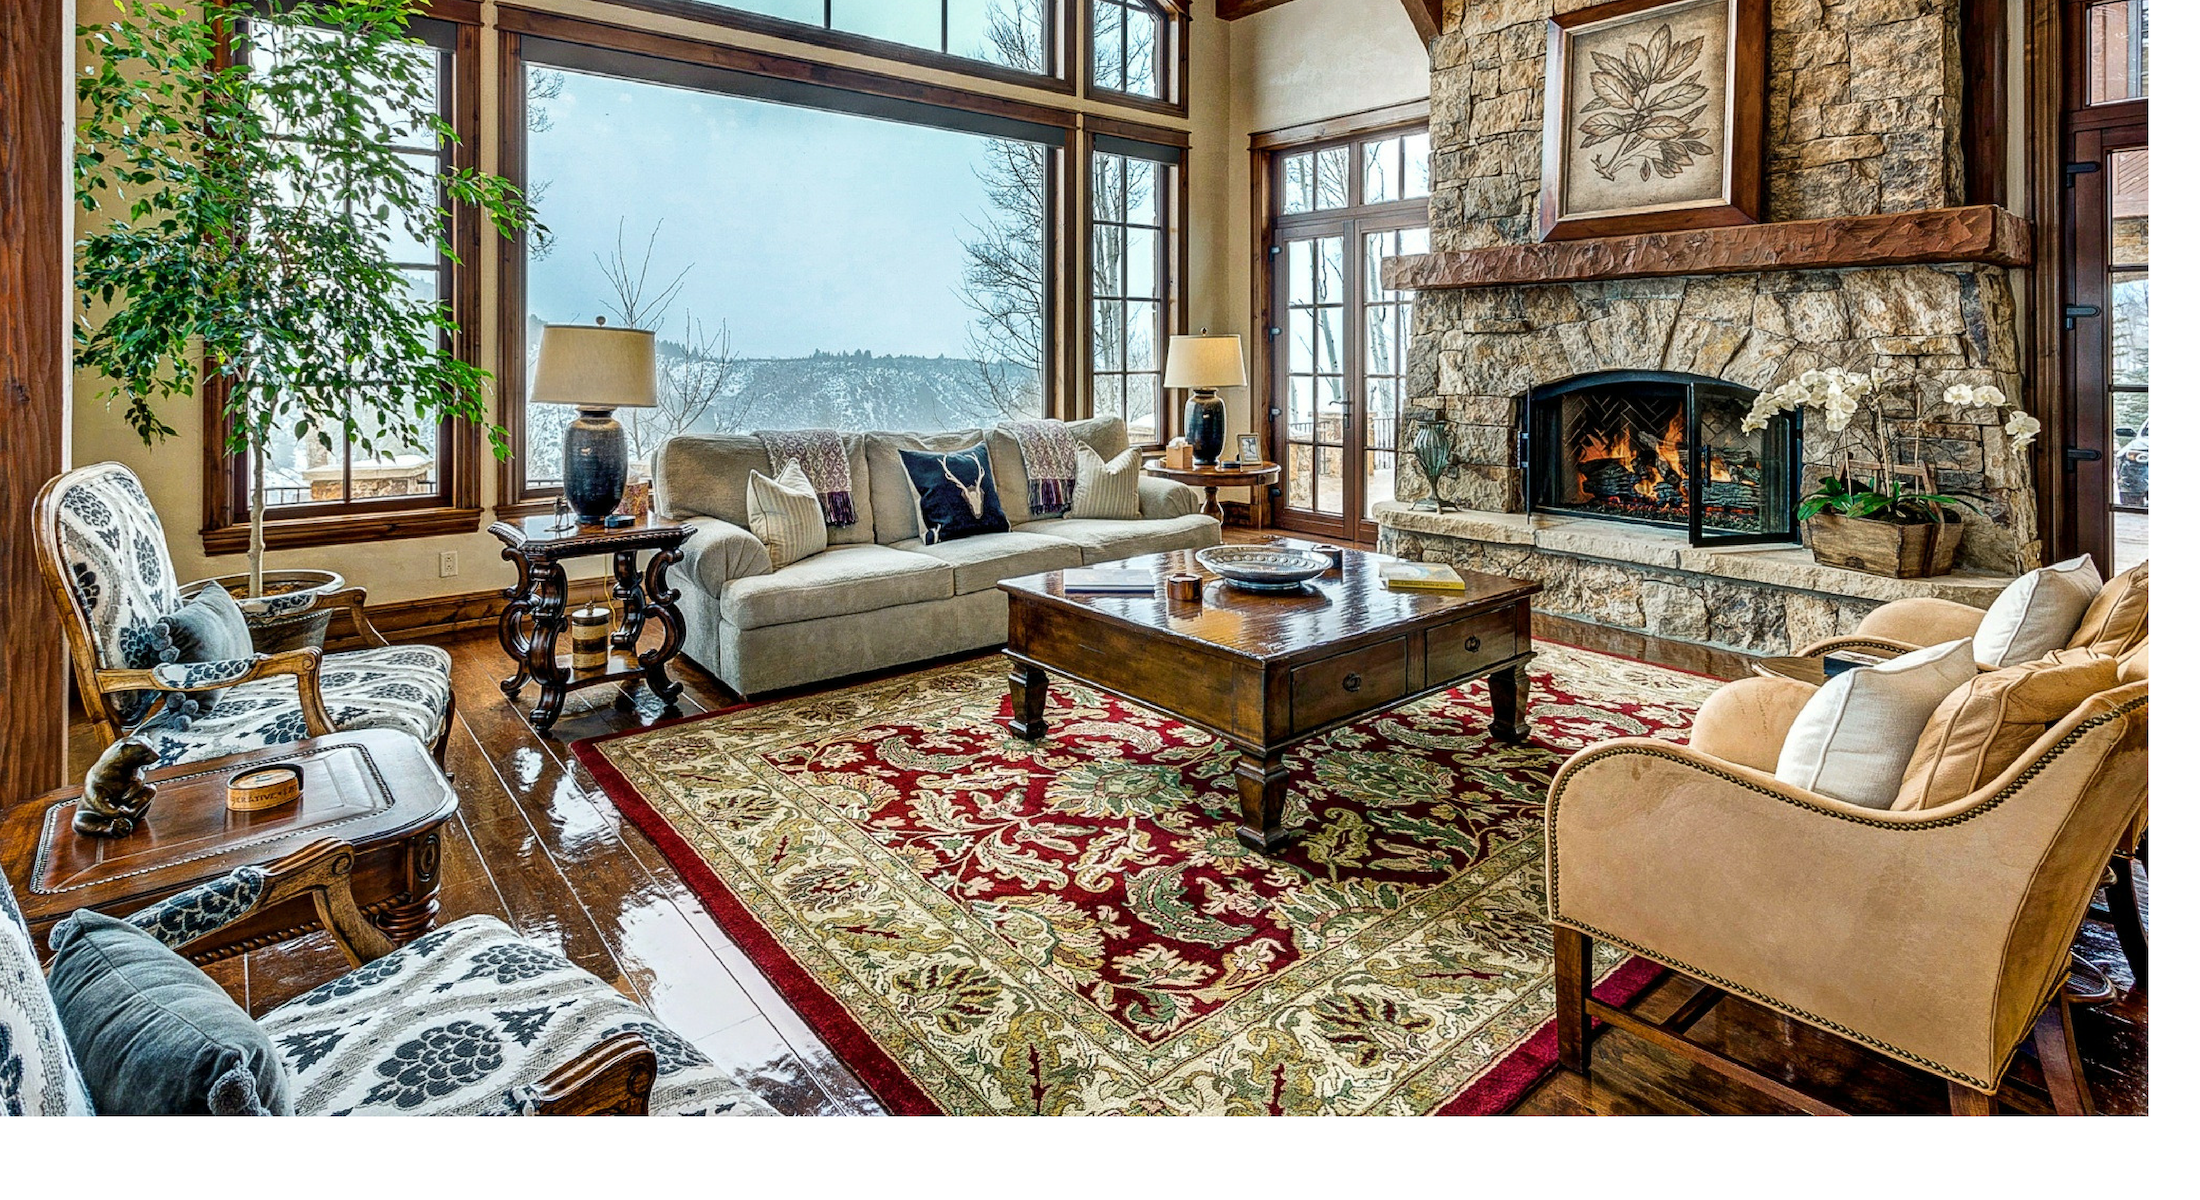 Luxury Real Estate Search All Nh Luxury Homes For Sale